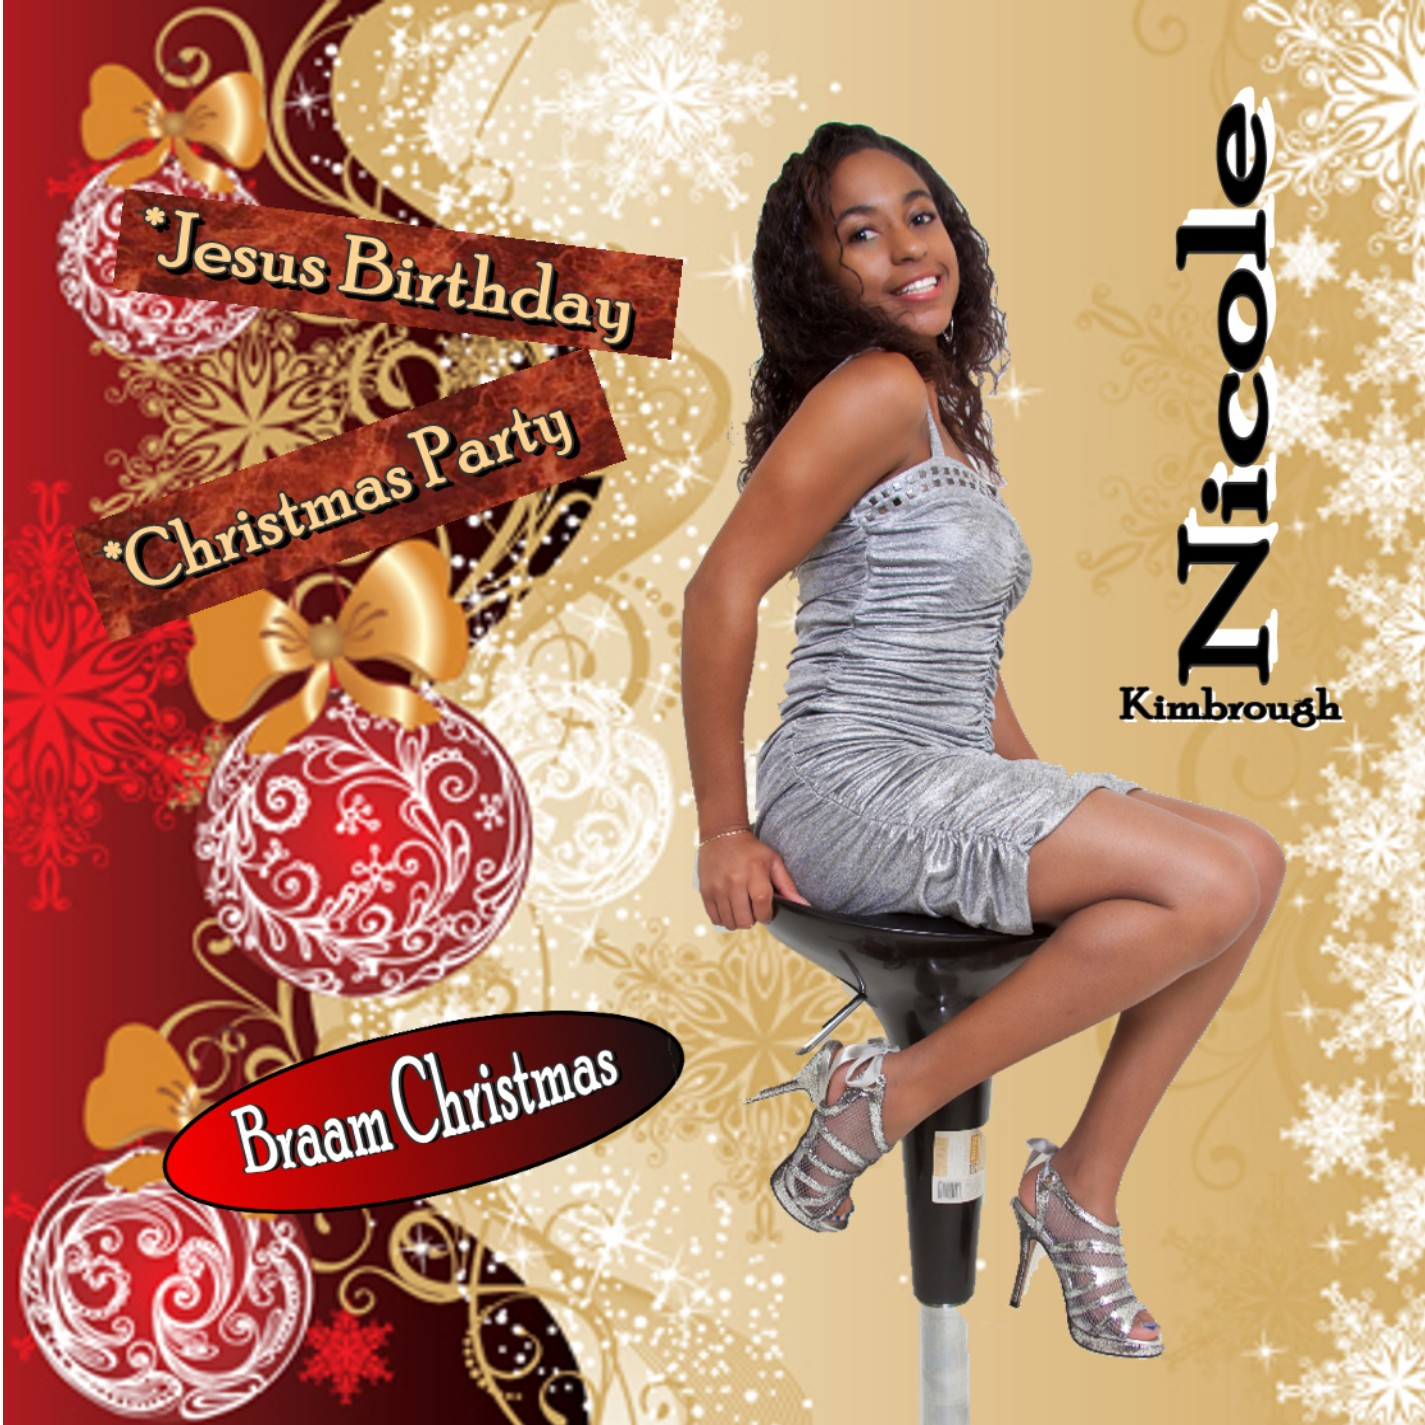 Jesus Birthday, produced by Patrick Barrow / Caye Records